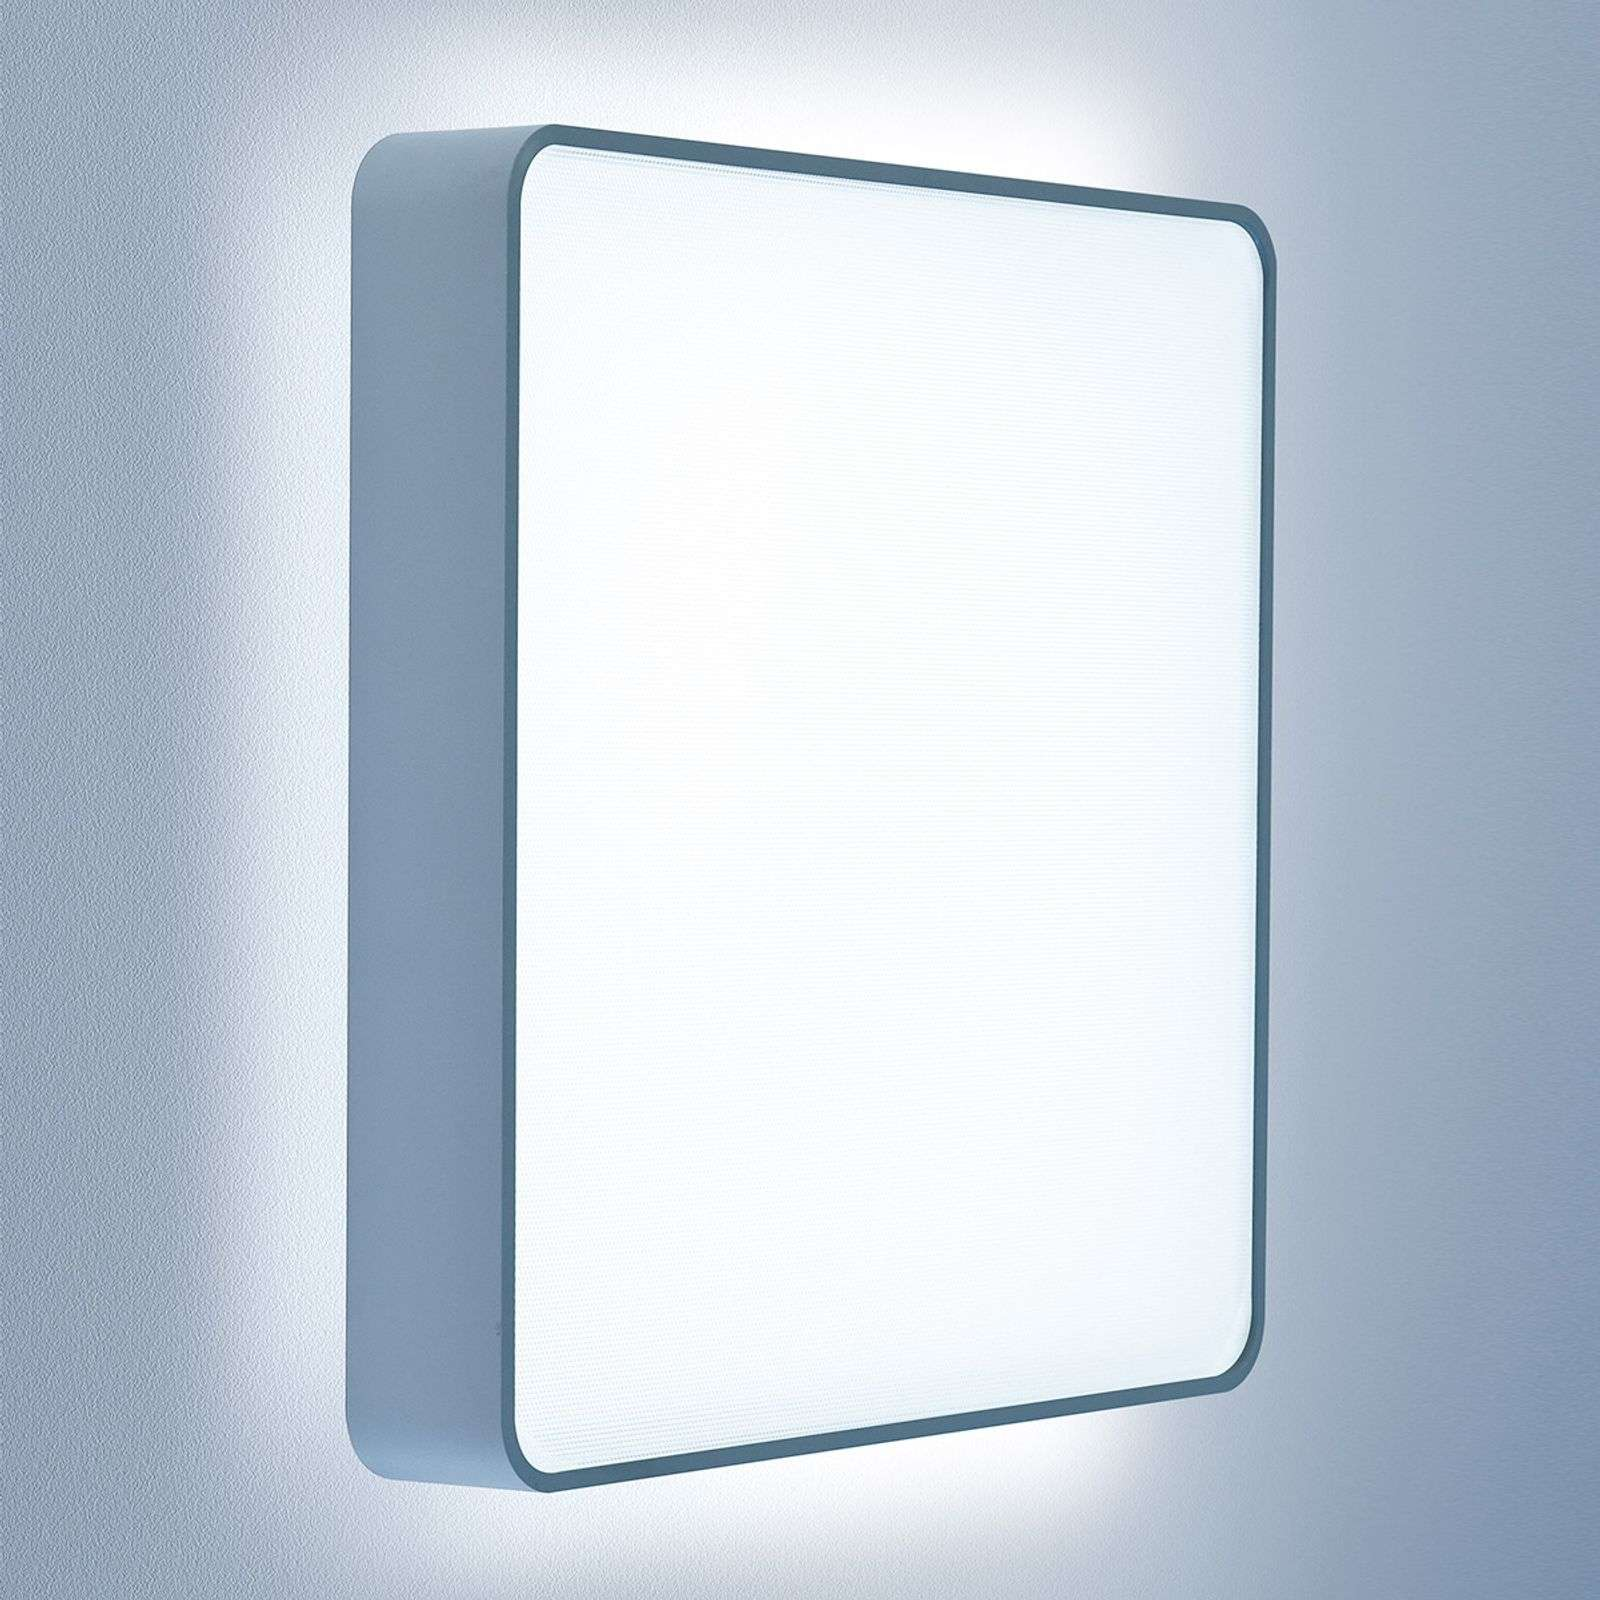 Applique LED Caleo X2 carrée 61,4 cm